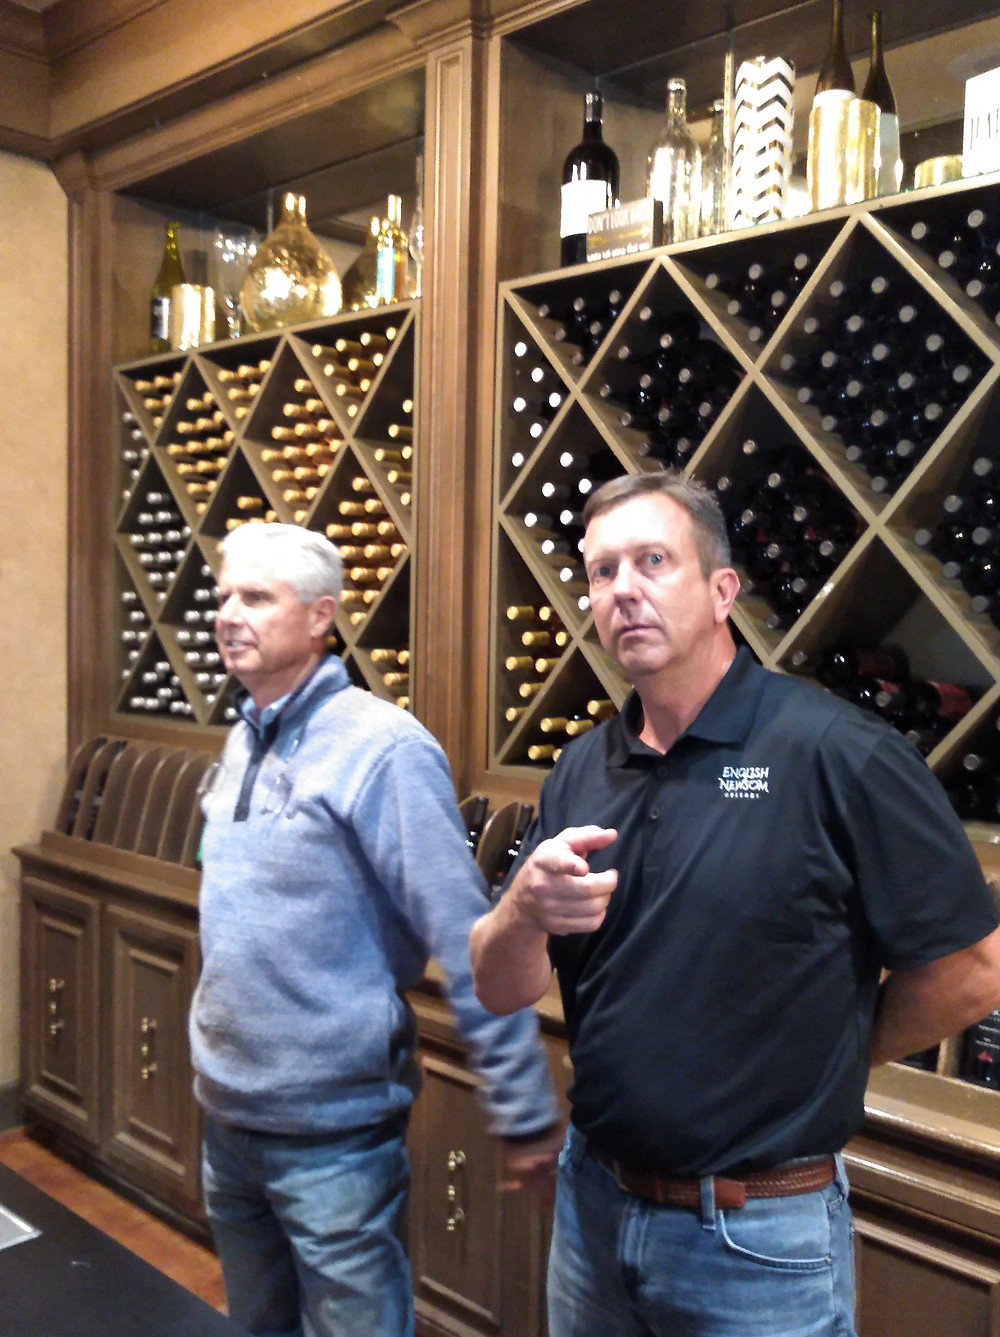 Tommy English and Steve Newsom, co-owners of English Newsom Cellars